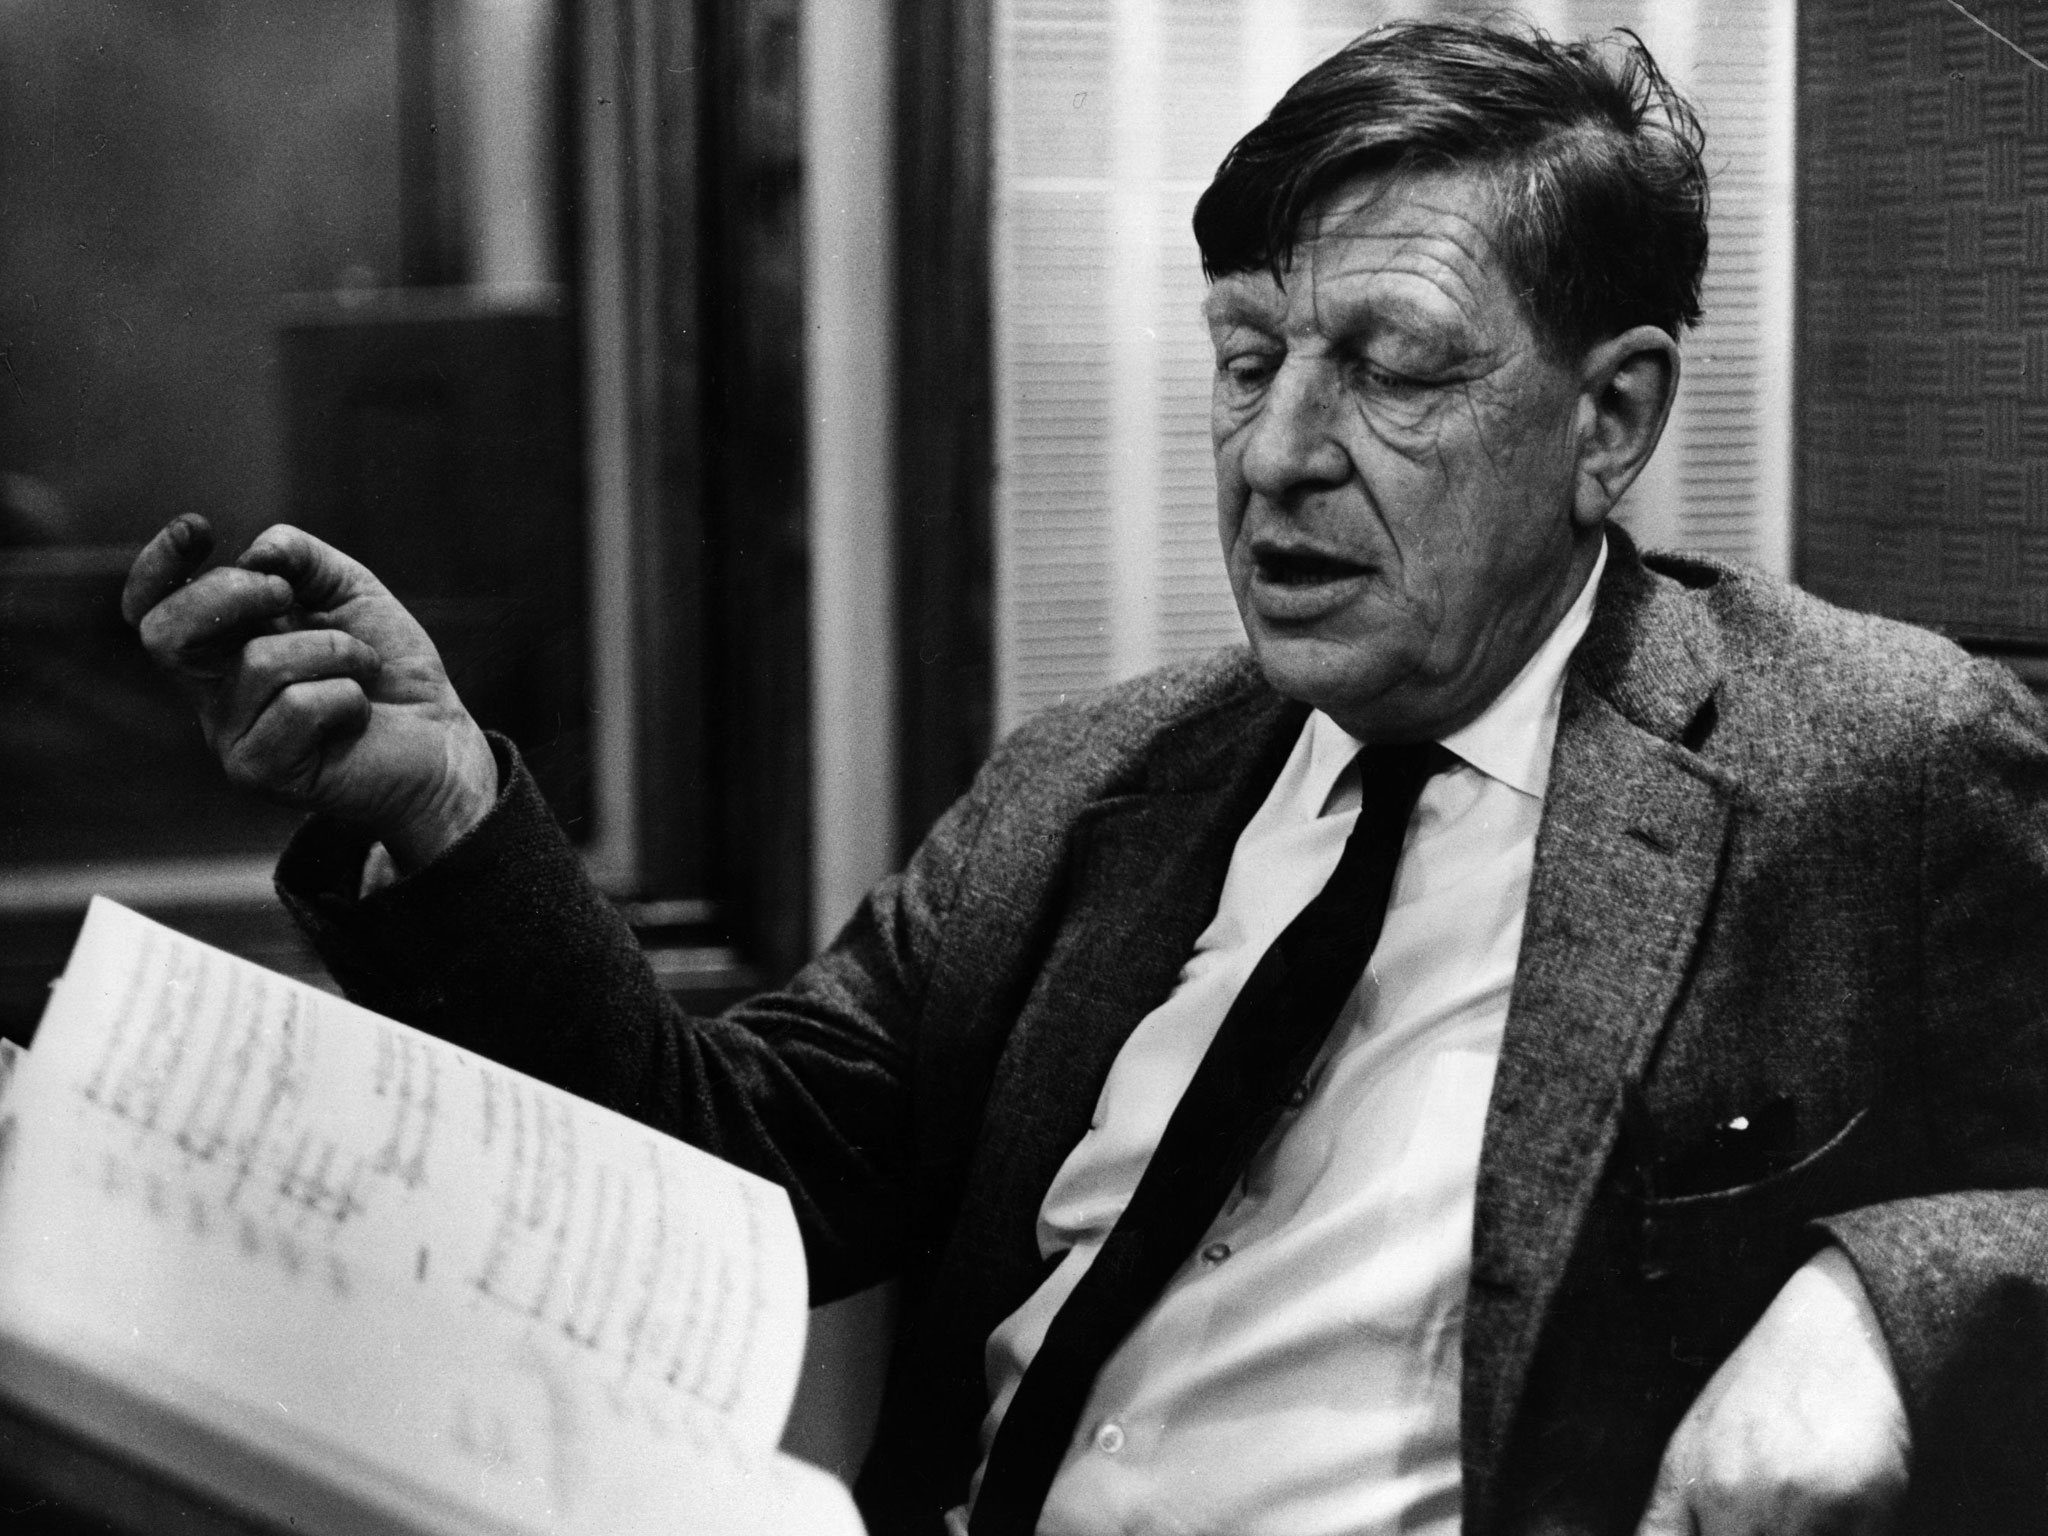 an analysis of metaphors in the service of social commentary in august 1968 by w h auden Essays and criticism on robert pinsky - pinsky, robert (vol 121) and w h auden pinsky contemplates the social contexts of american poetry in contemporary.